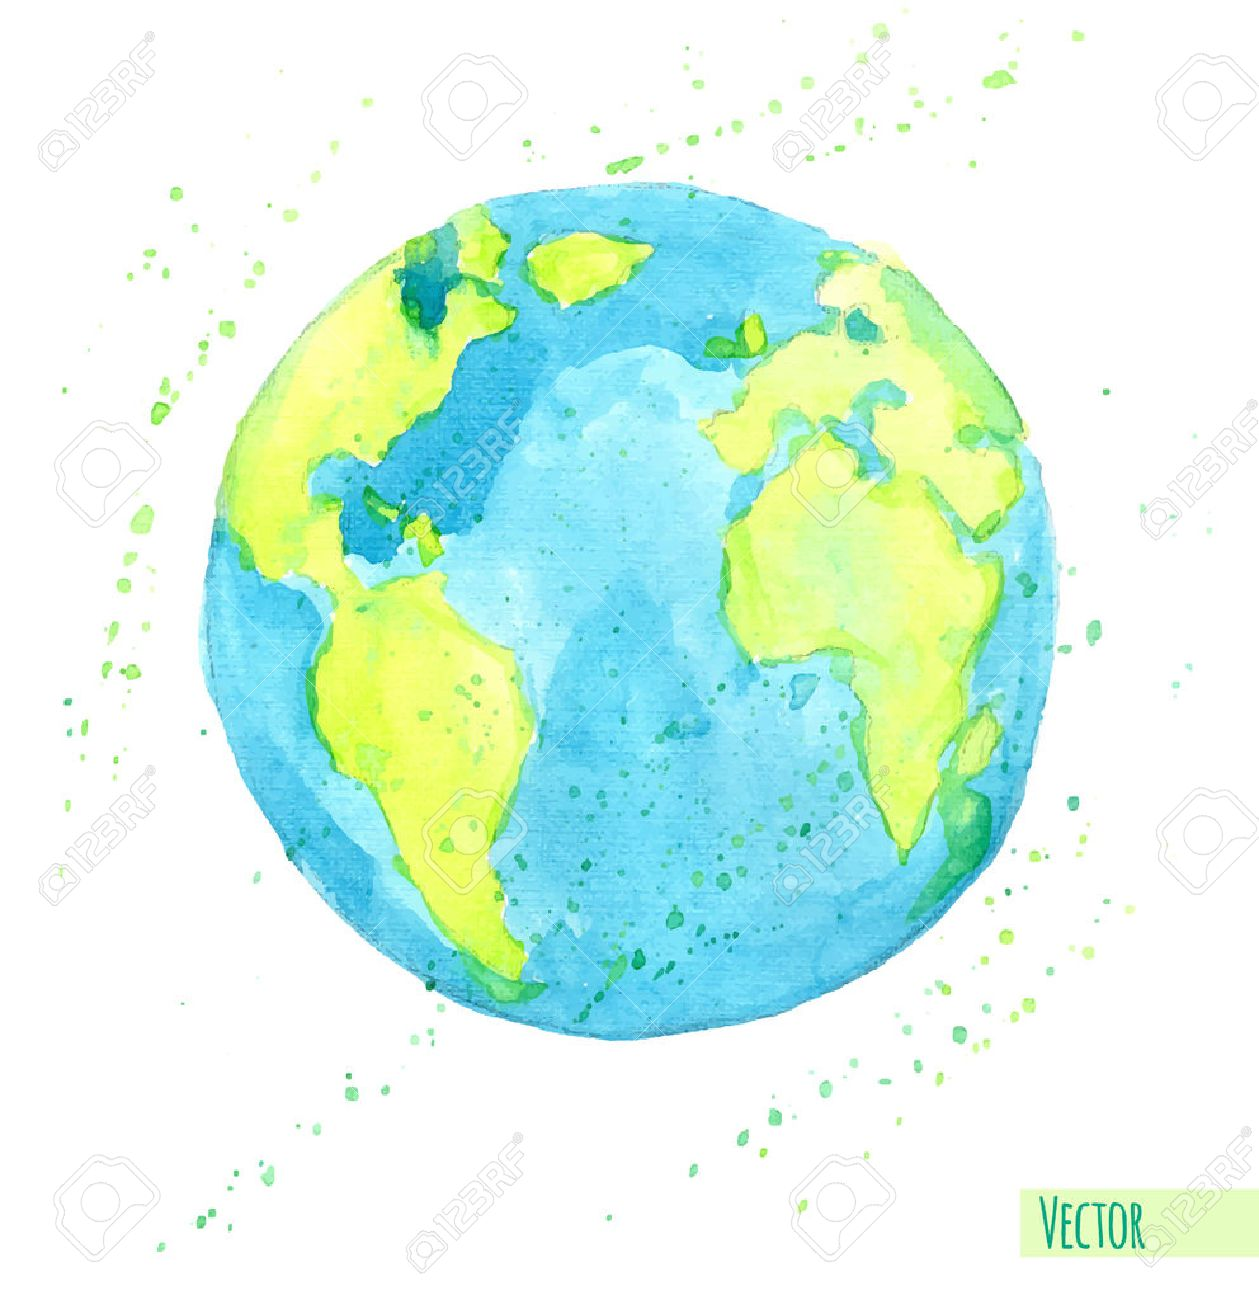 Hand drawn watercolor Earth, isolated illustration. - 41723835